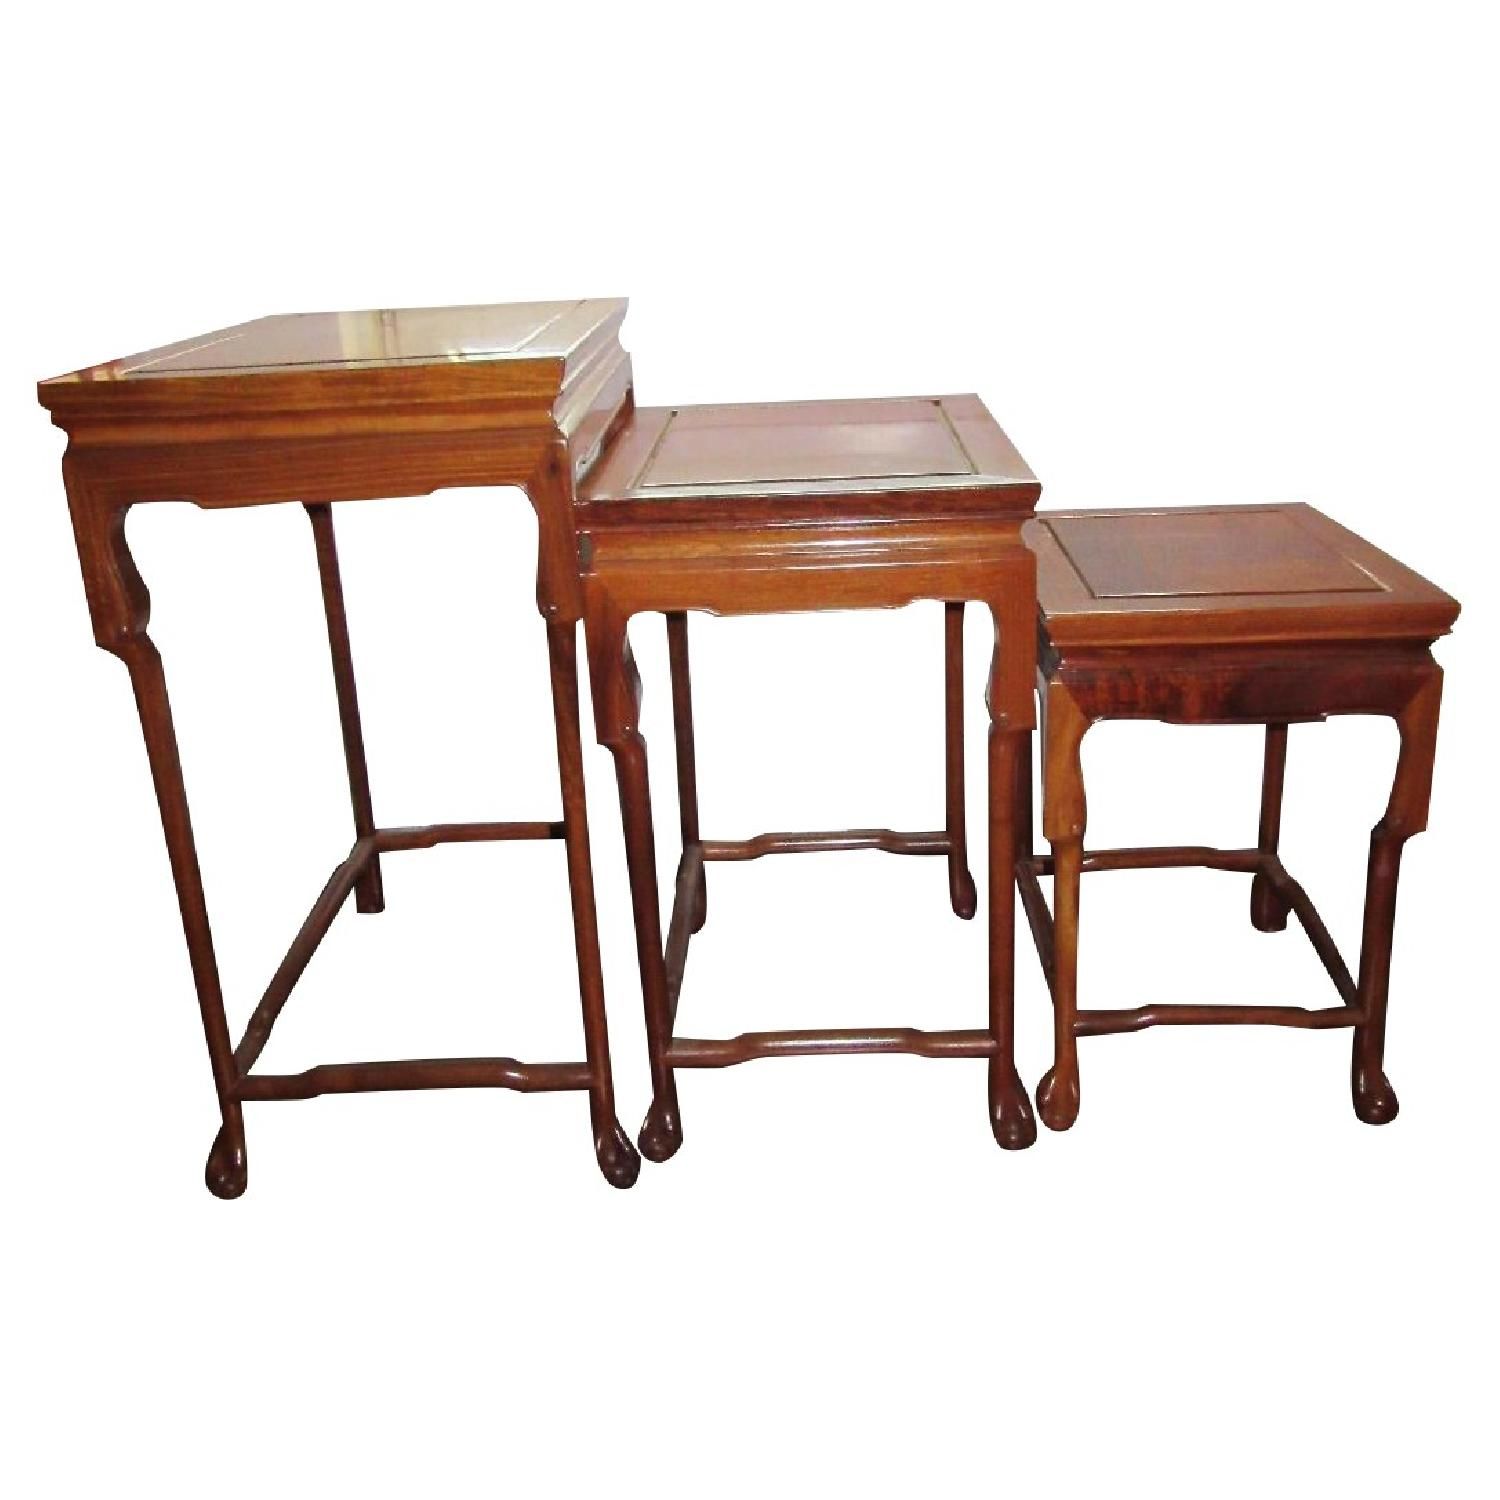 Stacking Side Tables - Set of 3 - image-0